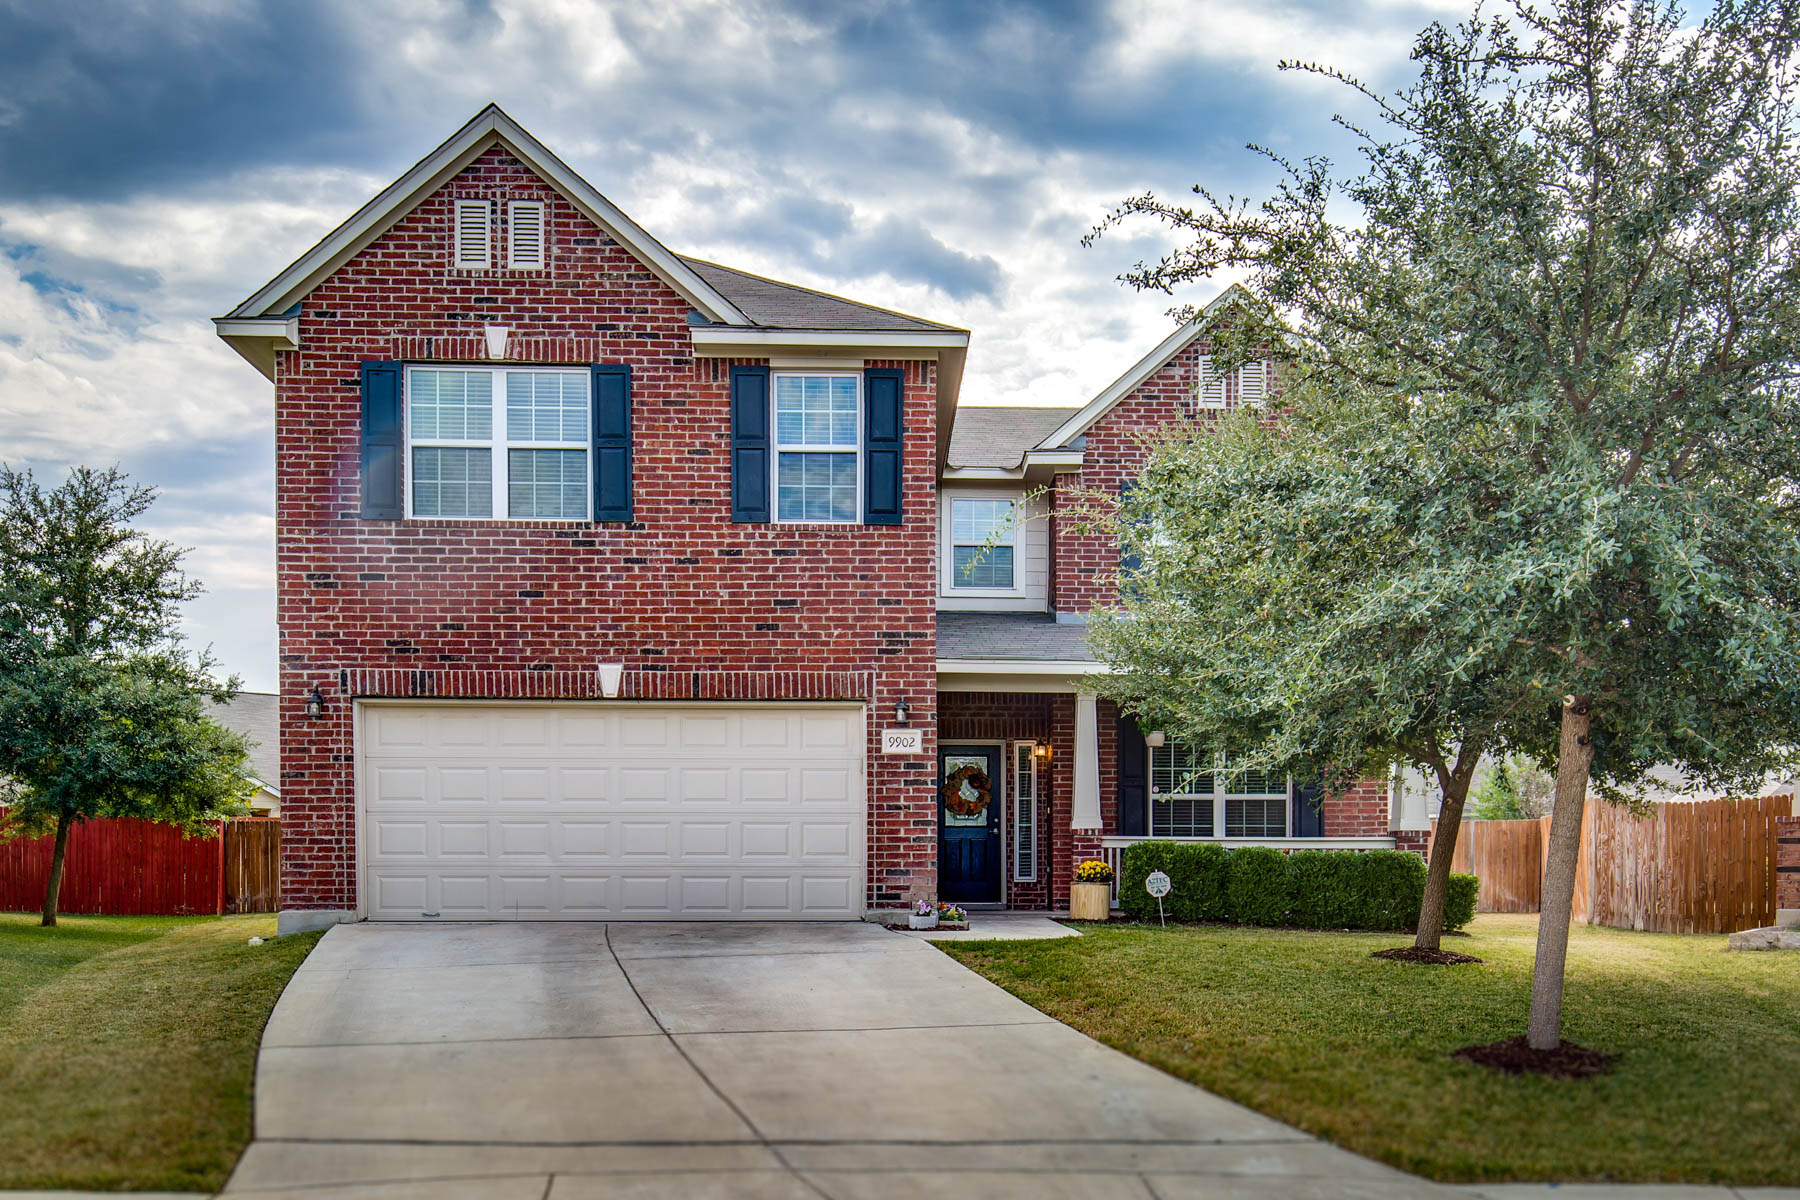 Single Family Home for Sale at Immaculate Home in Westover Valley 9902 Sable Green San Antonio, Texas 78251 United States